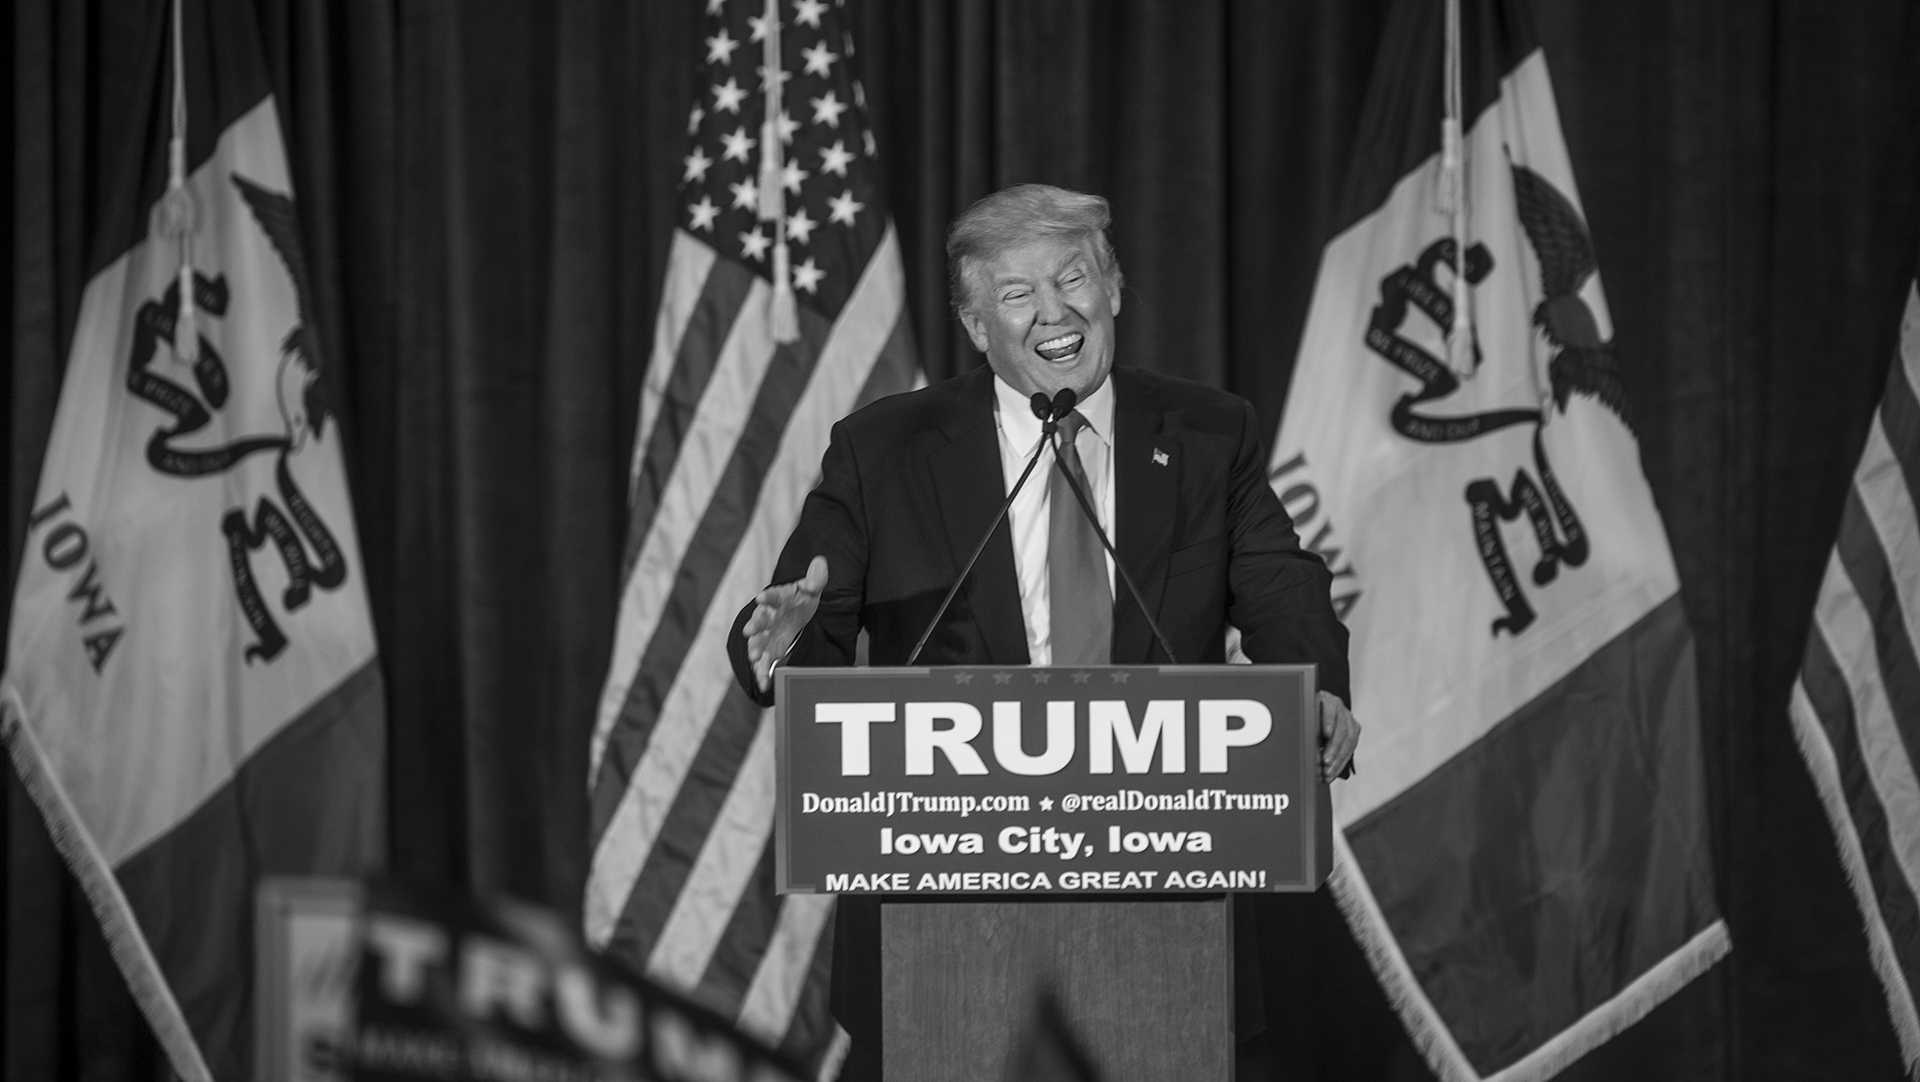 FILE - Donald Trump speaks to a crowd at the University of Iowa Field house on Tuesday, Jan. 26, 2016. Trump is currently tied in Iowa with Ted Cruz. (The Daily Iowan/file)